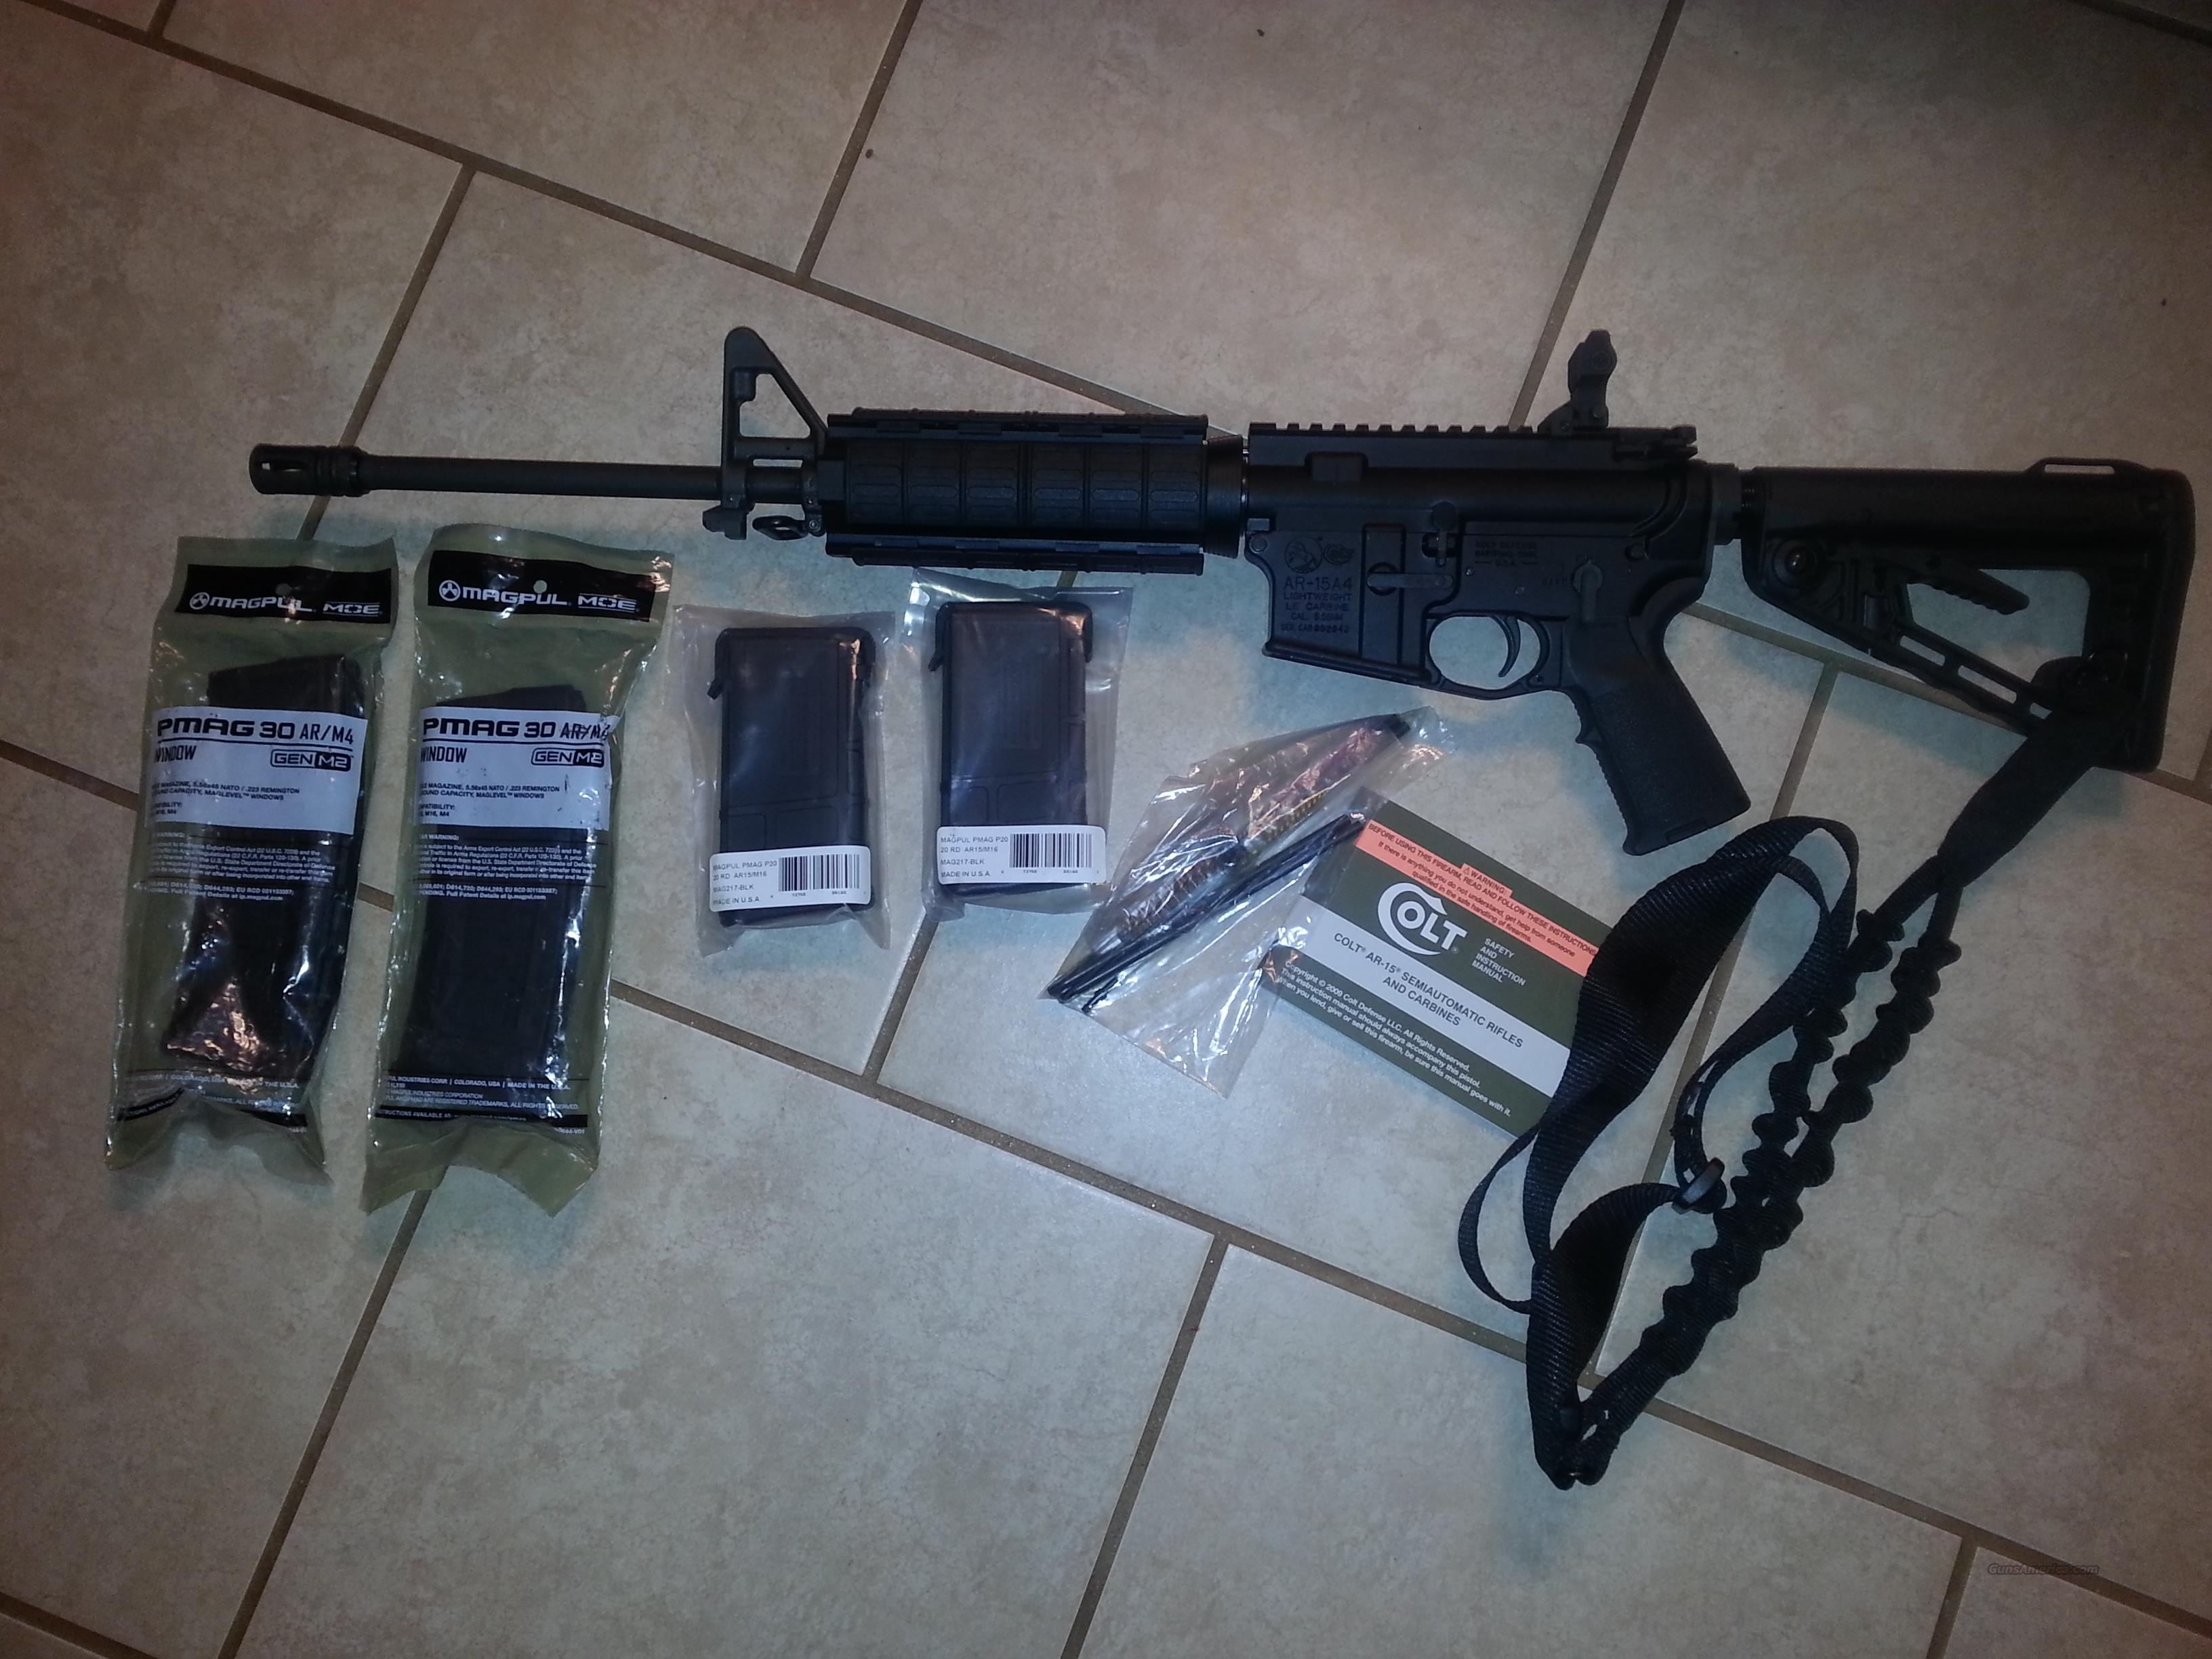 NEW NEVER FIRED COLT AR15 6720 WITH MAGPUL EXTRAS & QUADRAIL  Guns > Rifles > Colt Military/Tactical Rifles